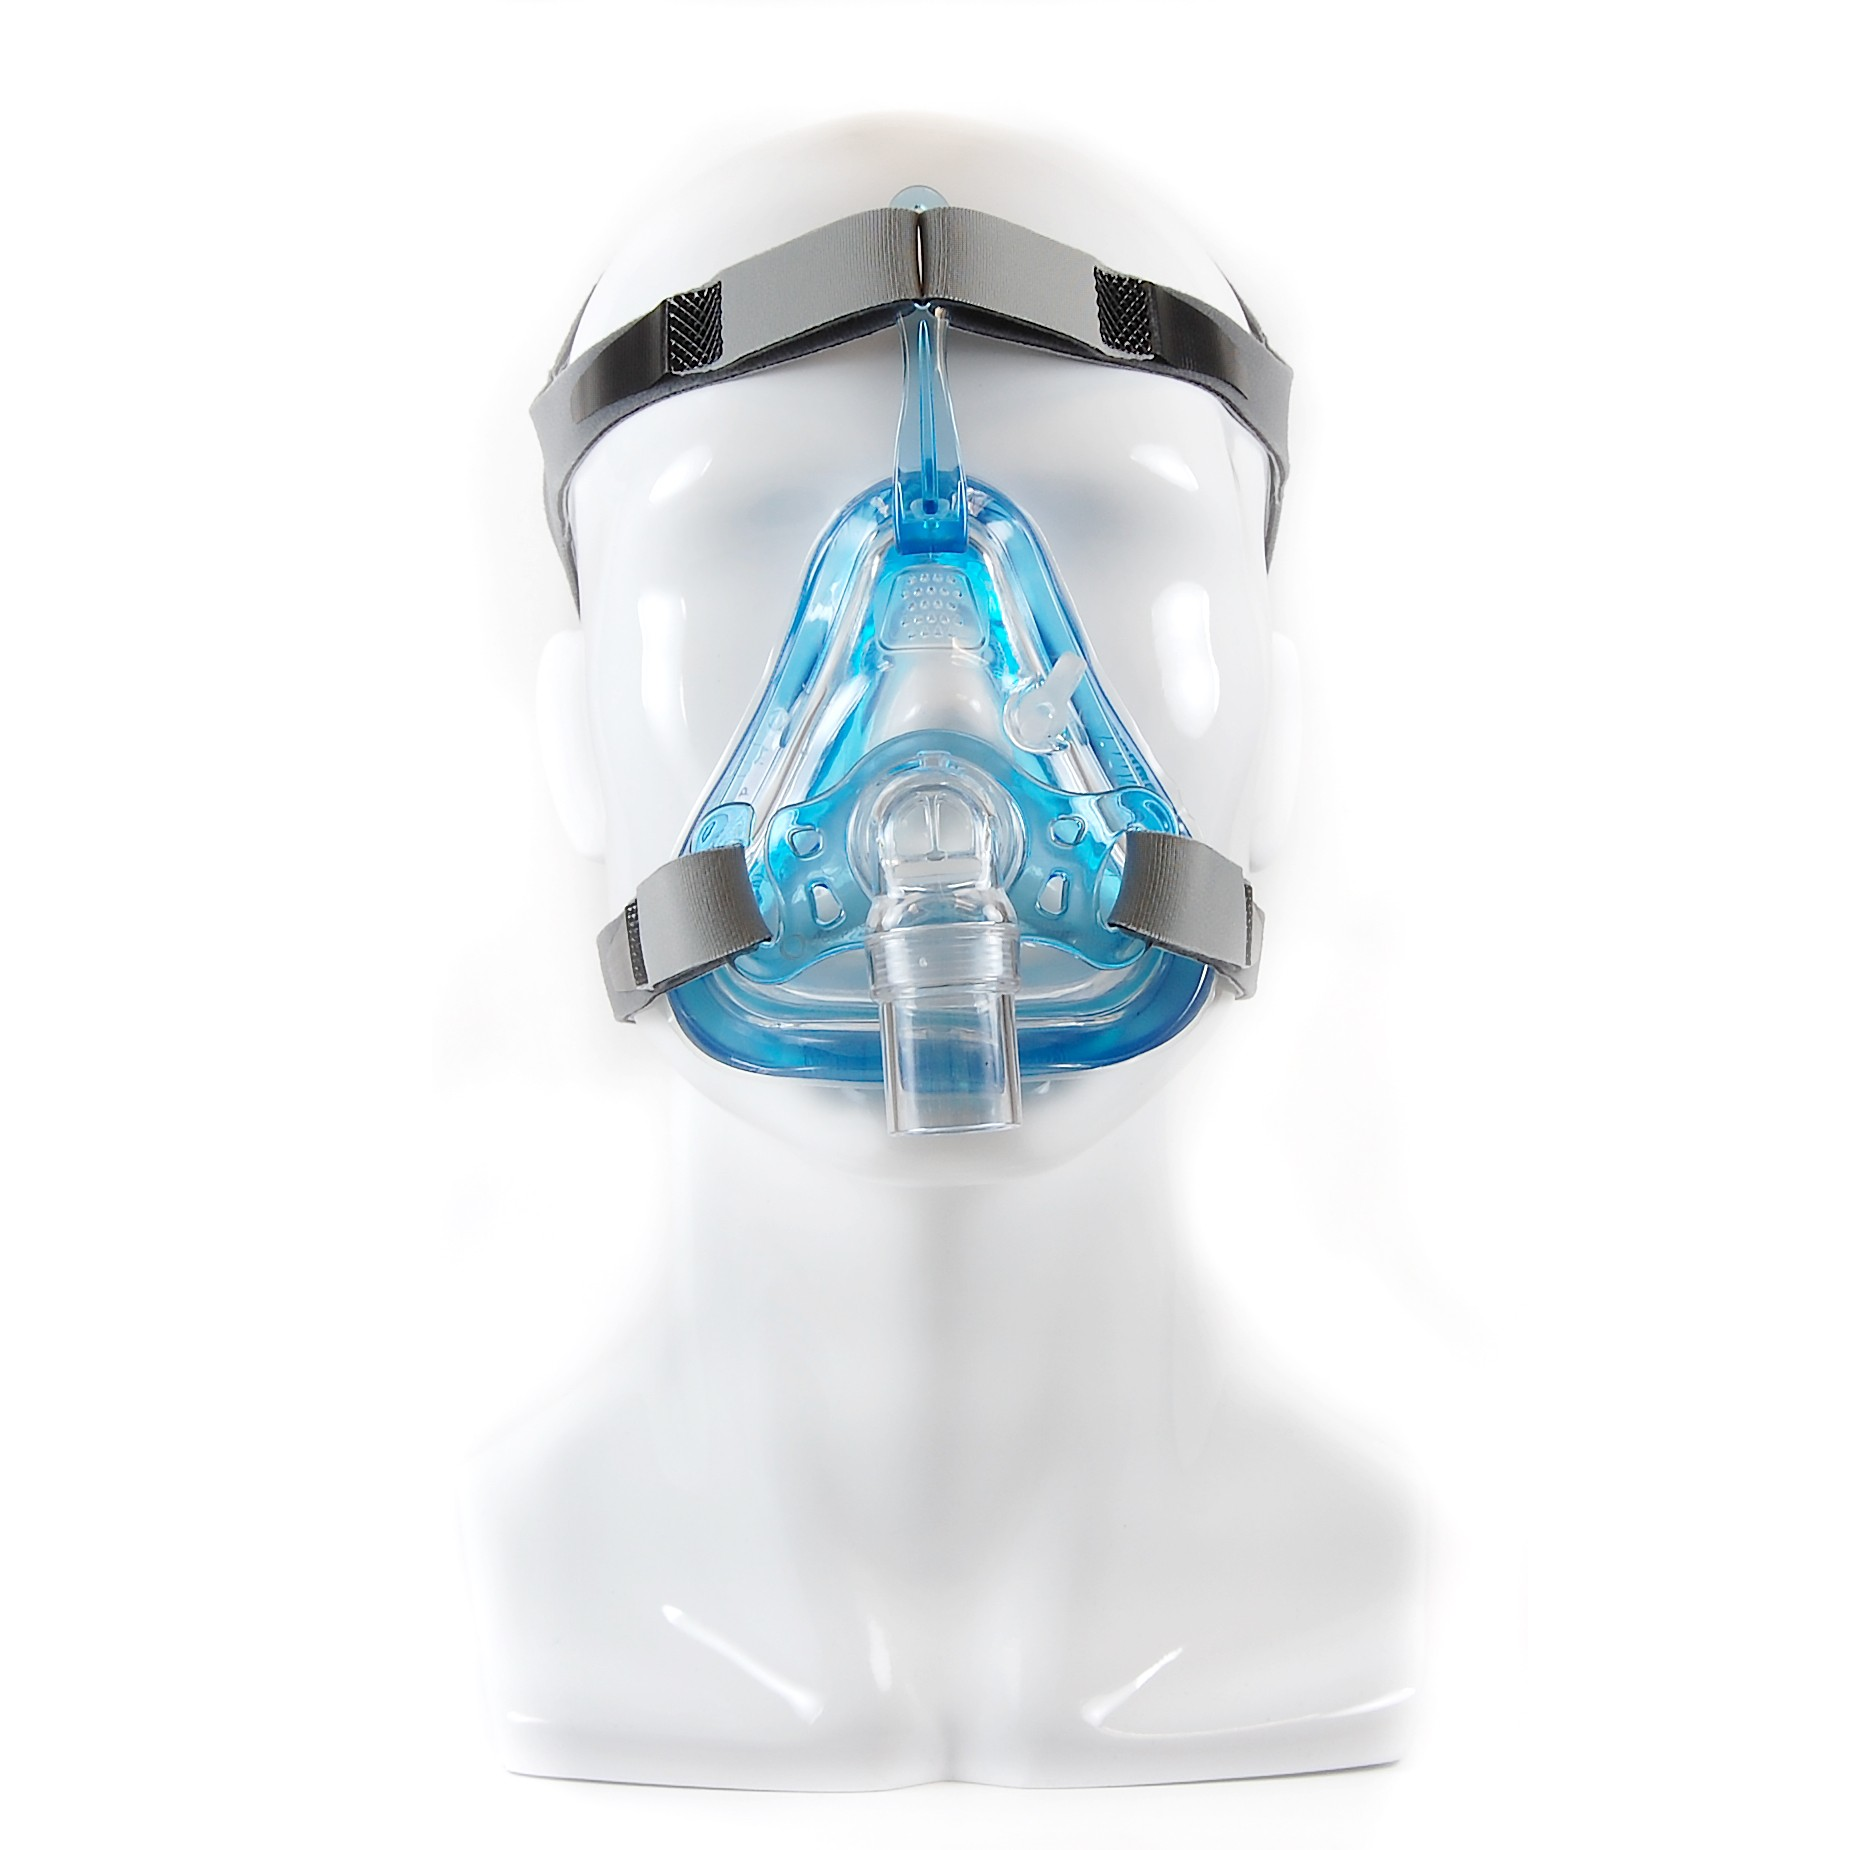 SleepNet Ascend Full Face CPAP Mask & Headgear